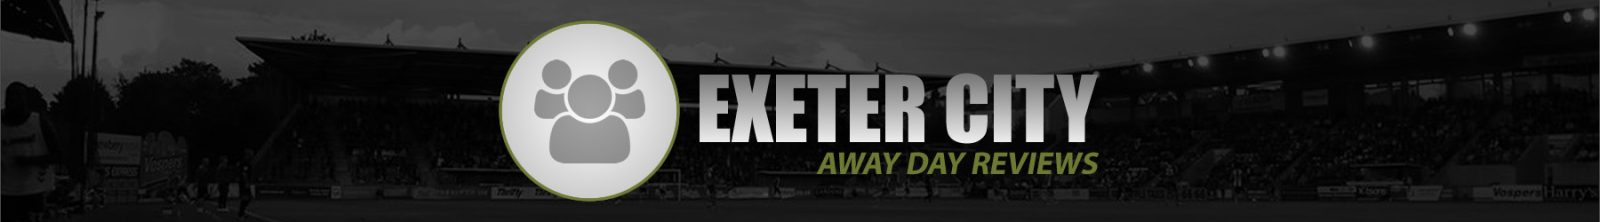 Review Exeter City